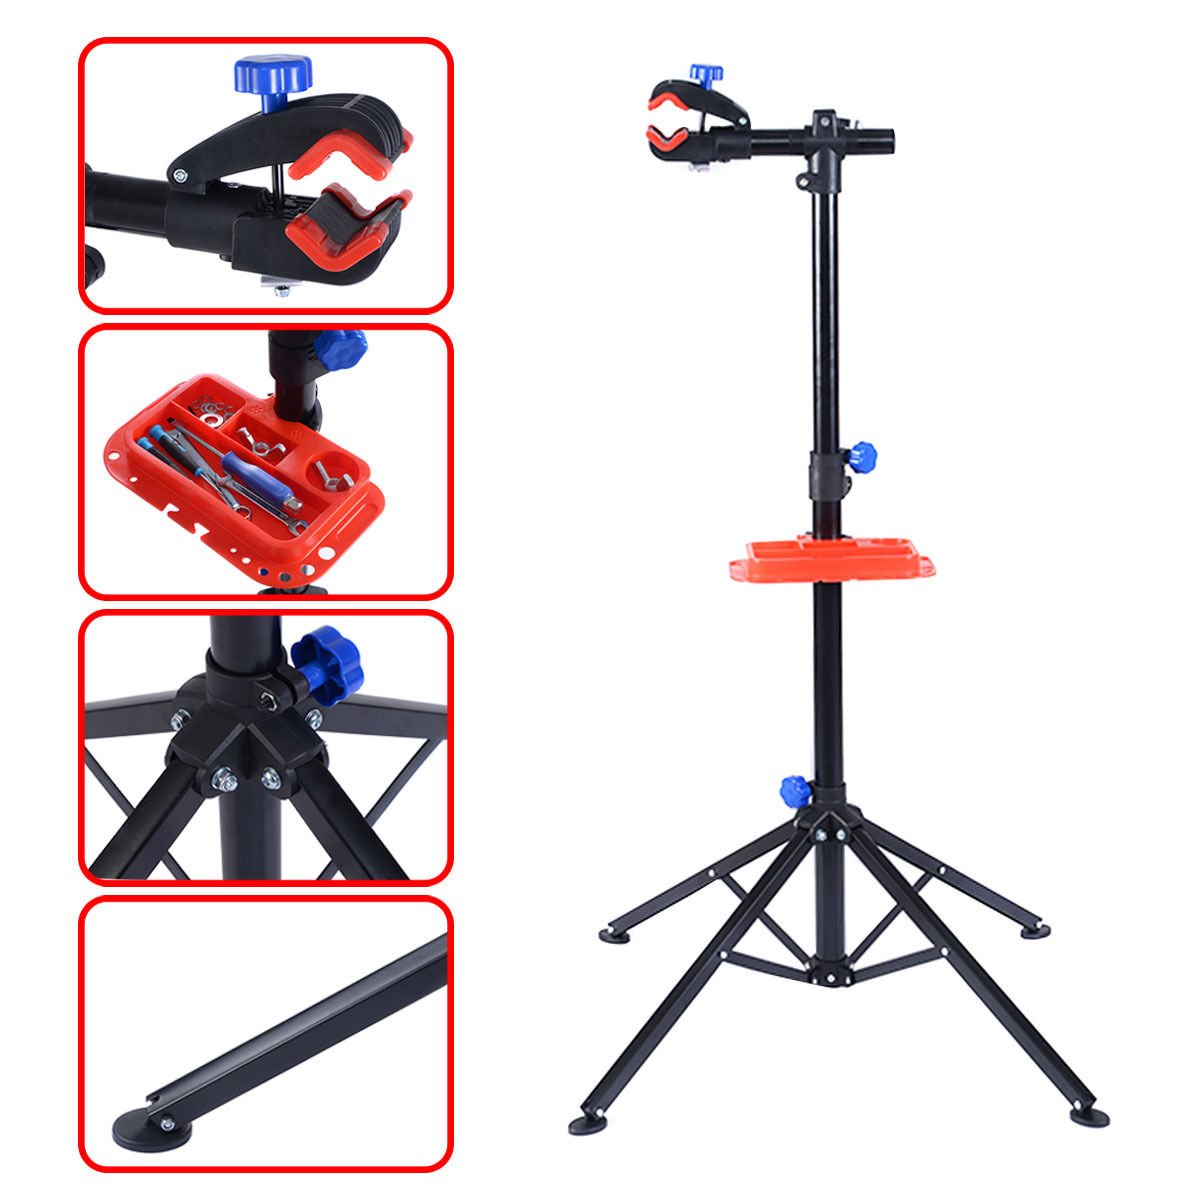 S AFSTAR Pro Mechanic Bike Repair Stand Adjustable 41 to 75 Cycle Rack Bicycle Workstand Tool Tray